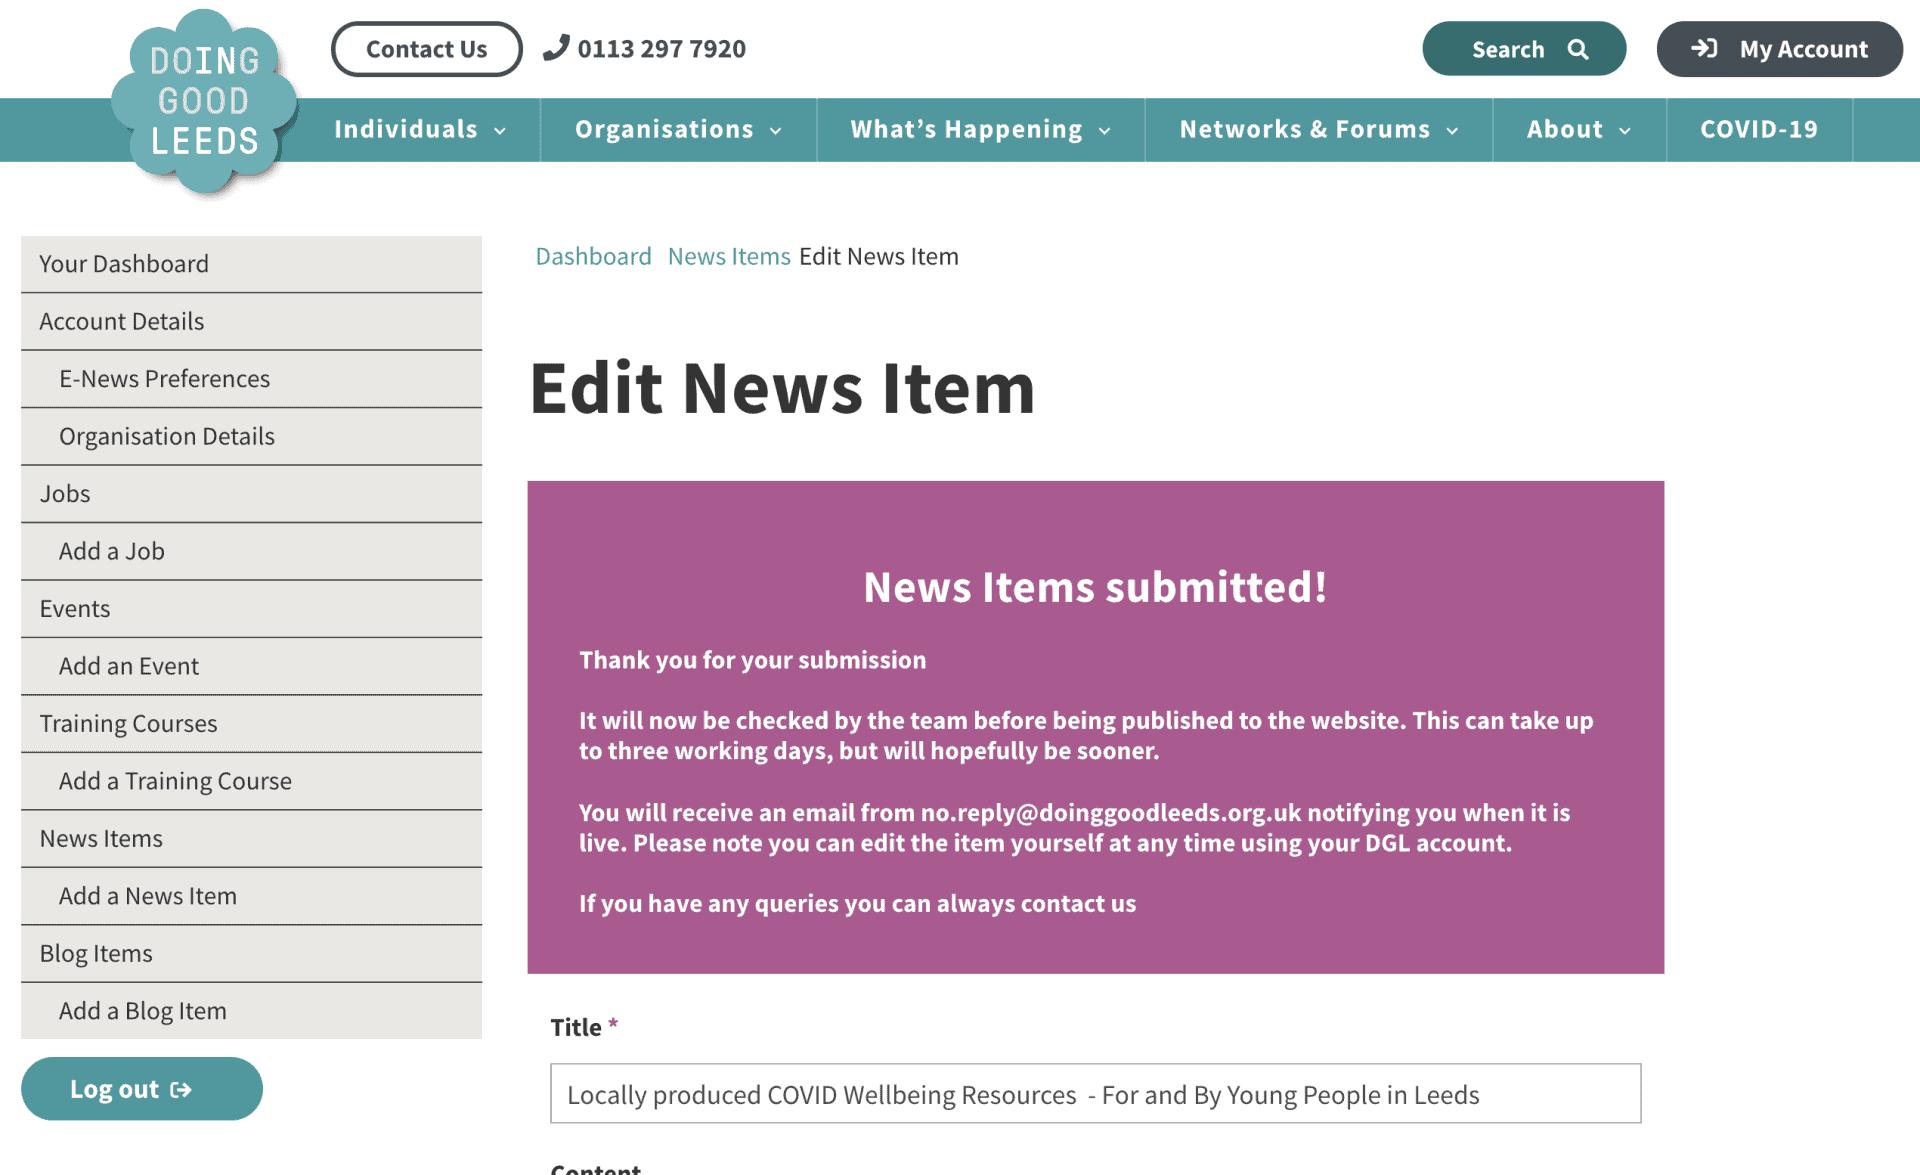 image of the website screen after submitting a news item